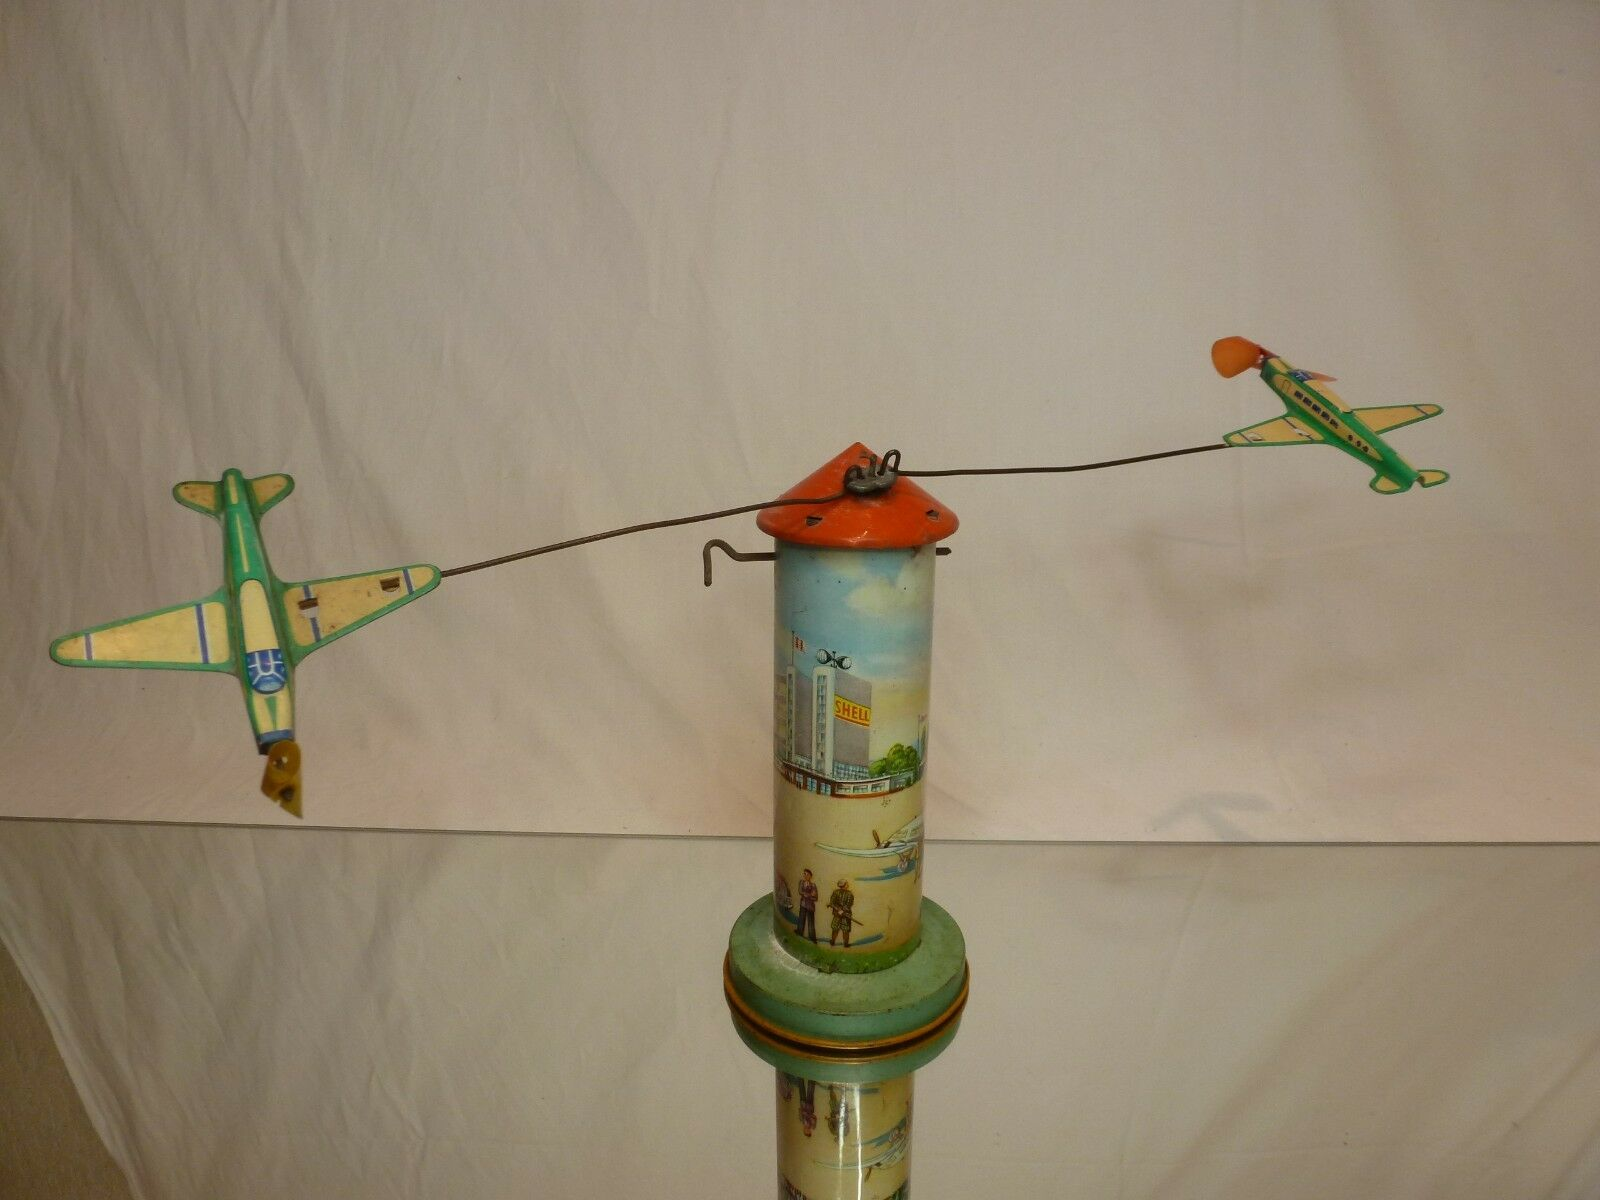 MADE IN WESTERN GERMANY US-ZONE - AIRPORT CONTROL TOWER - VERY  RARE - SHELL